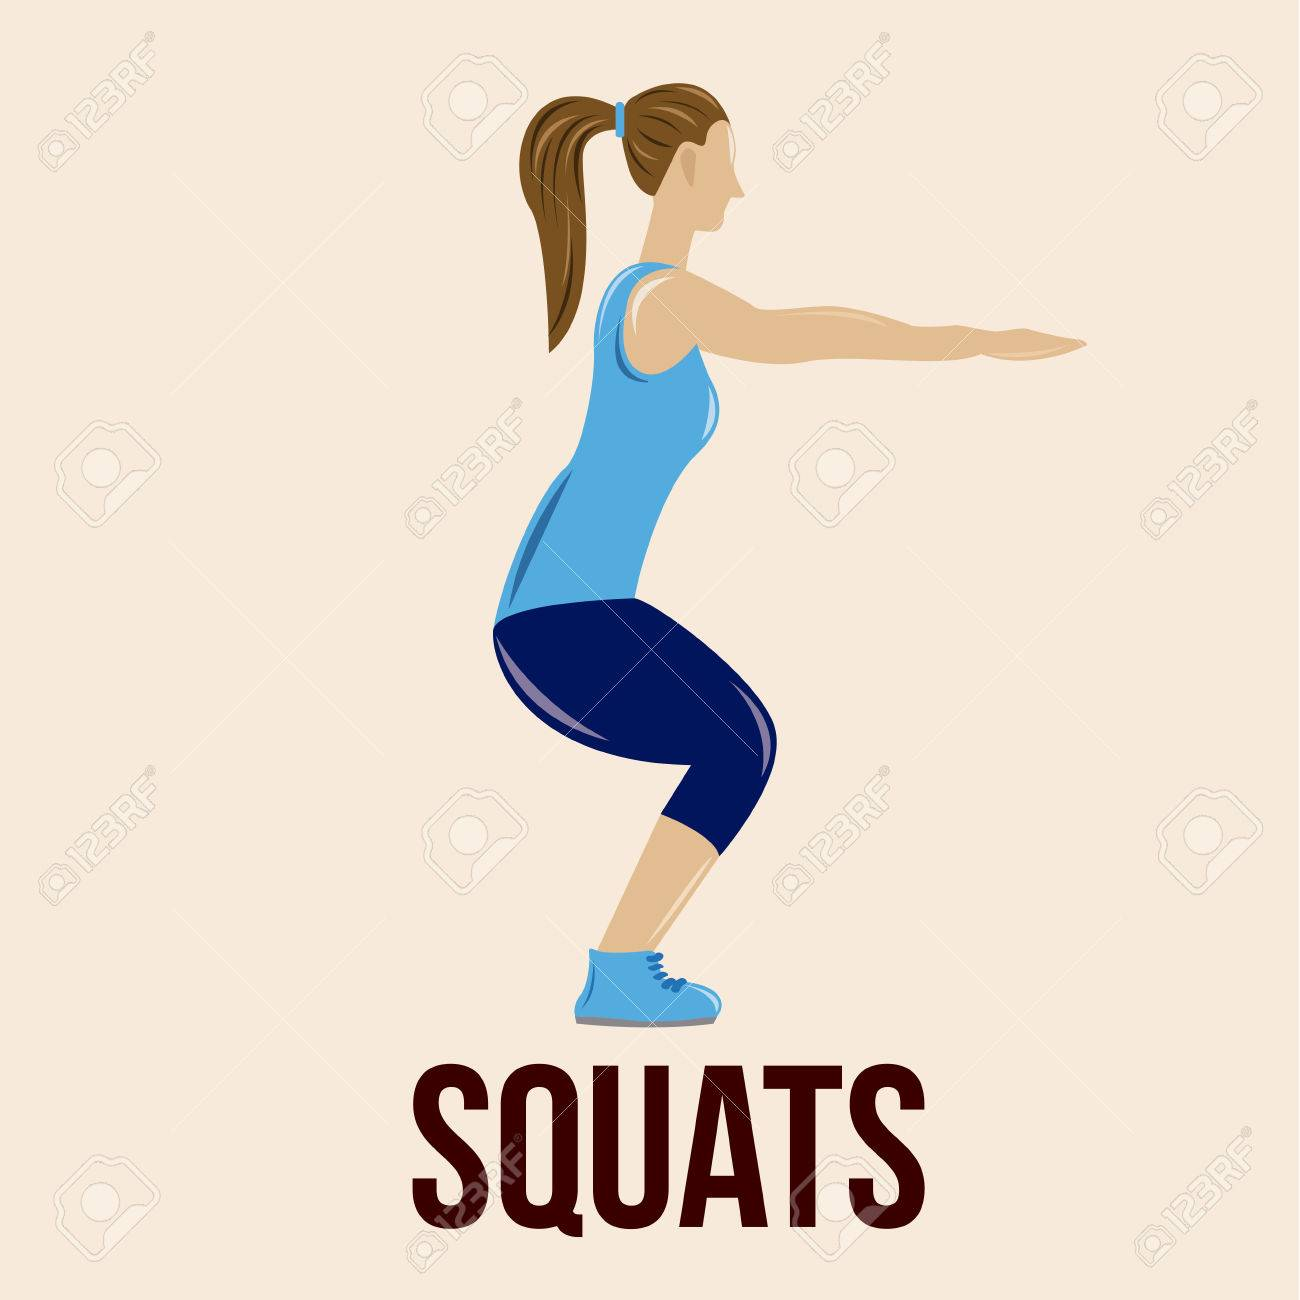 an isolated woman doing squats on a colored background - 32824015